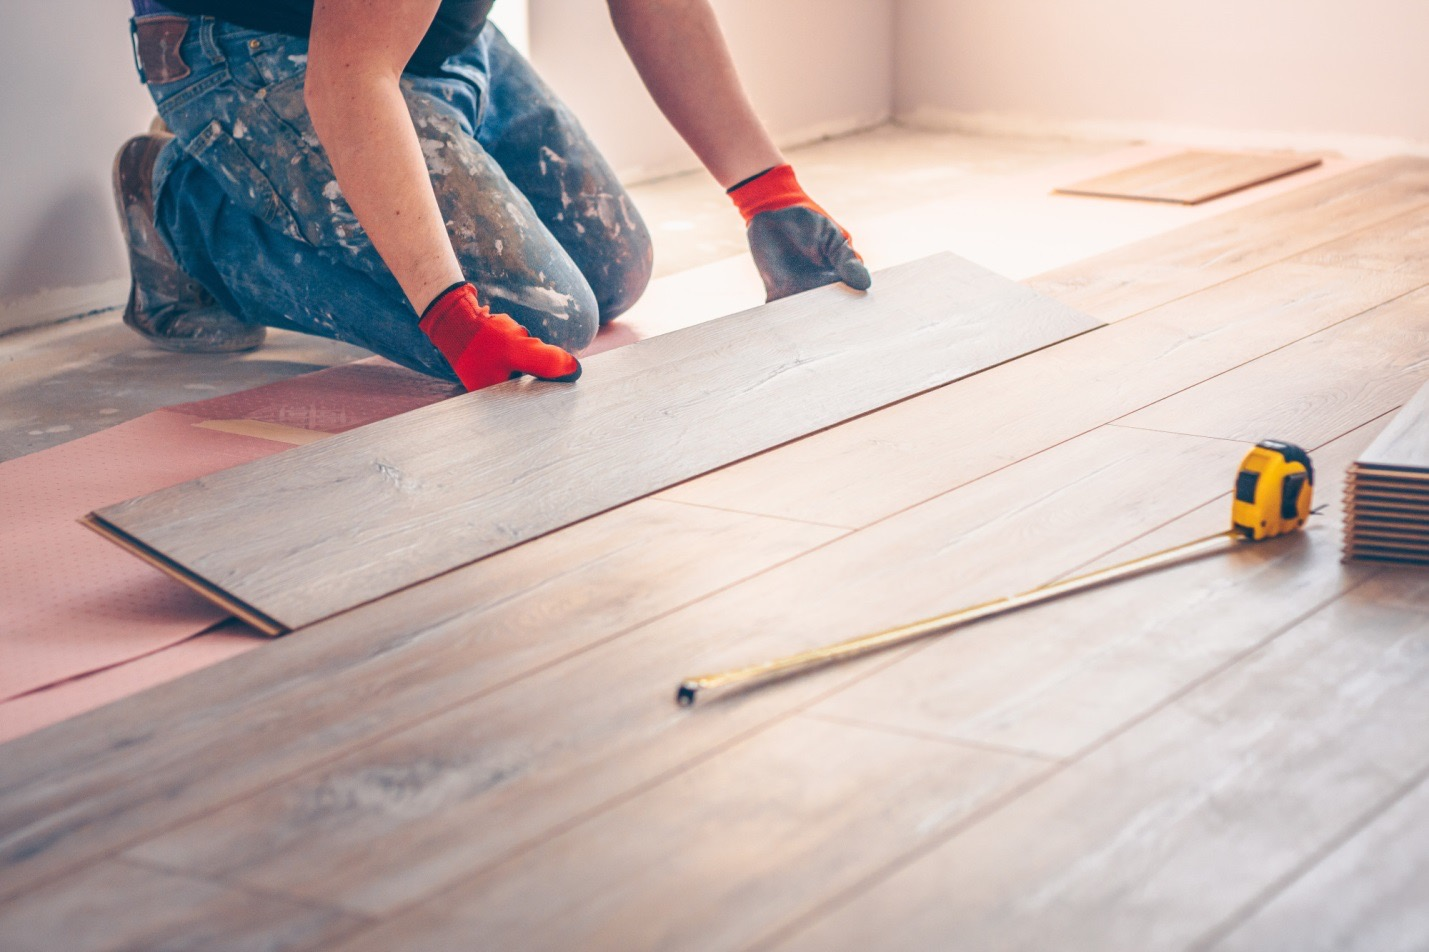 How To Install Or Lay Laminate Flooring, How Easy Is It To Lay Laminate Flooring